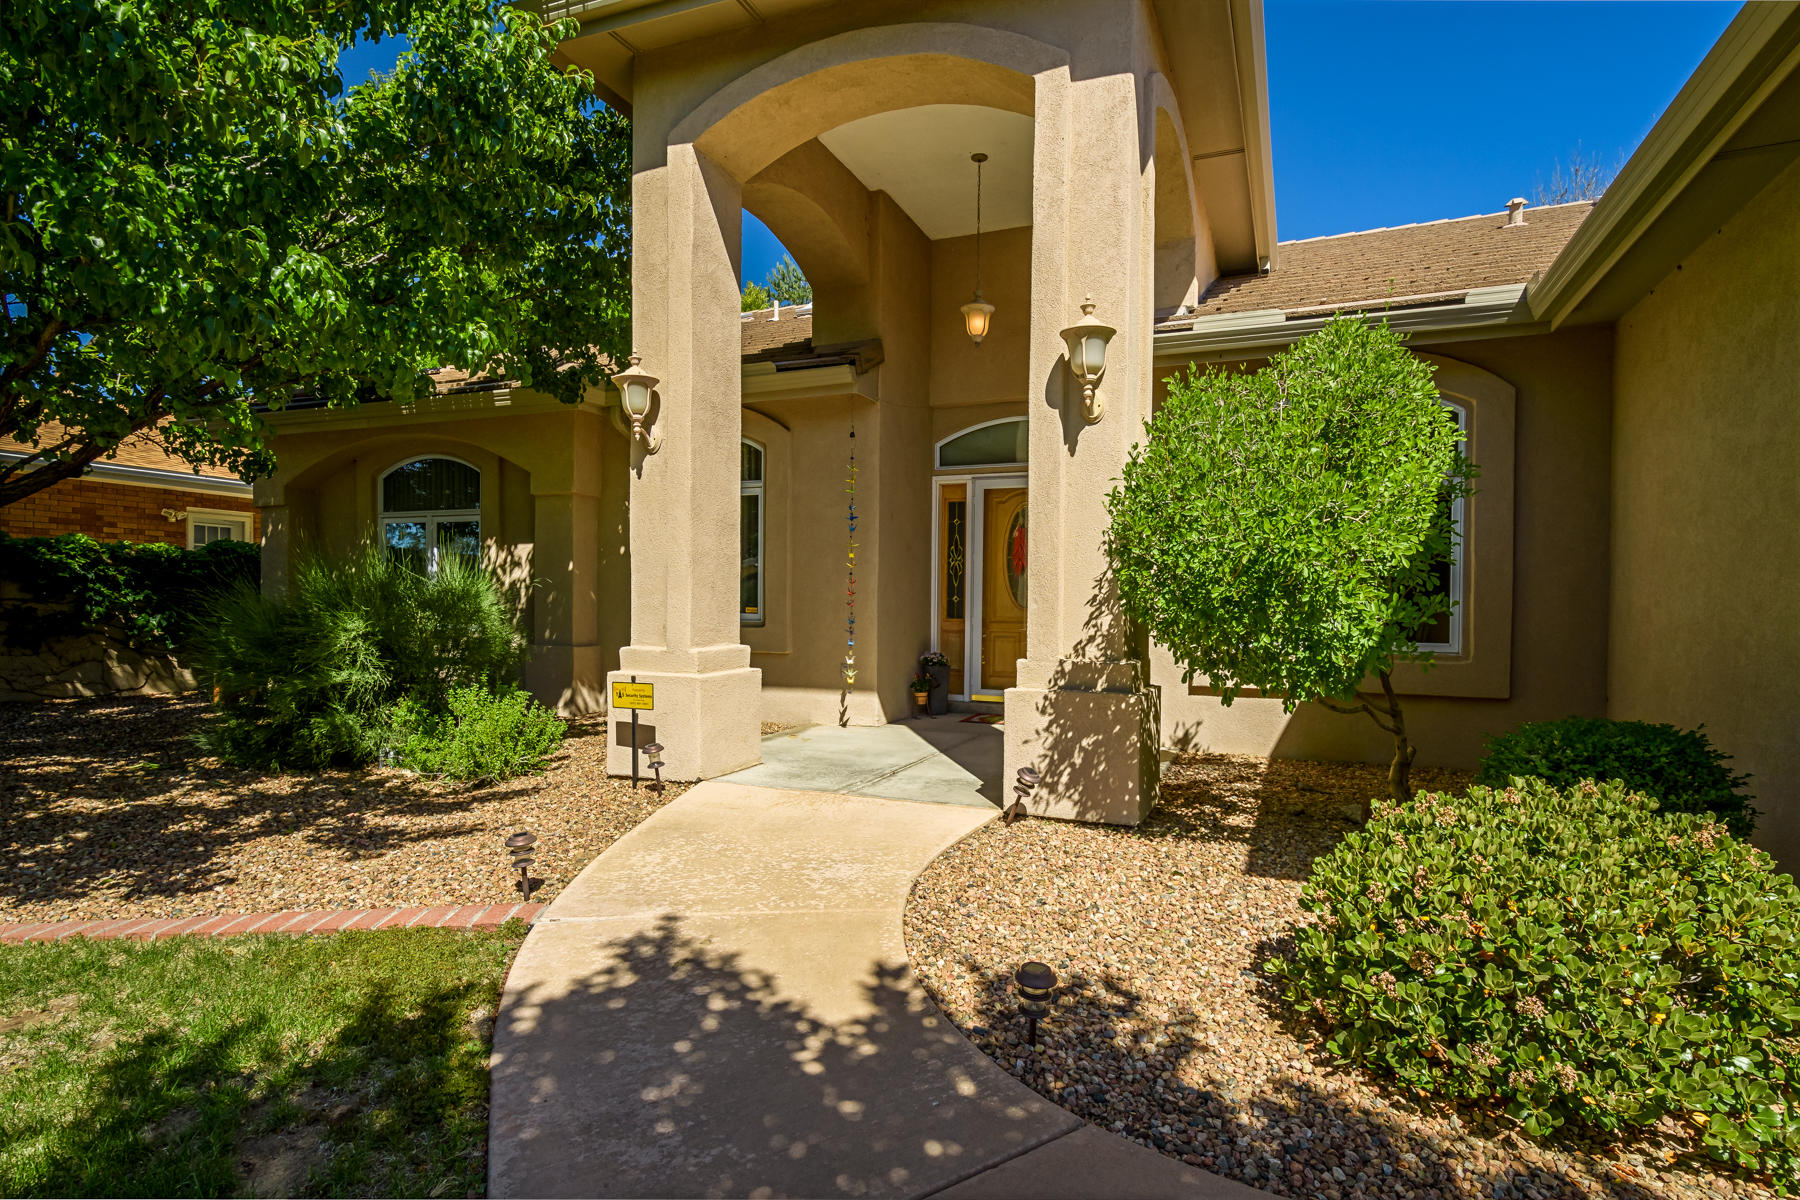 6924 BRANDYWINE Loop NE, Albuquerque, NM 87111 - Albuquerque, NM real estate listing